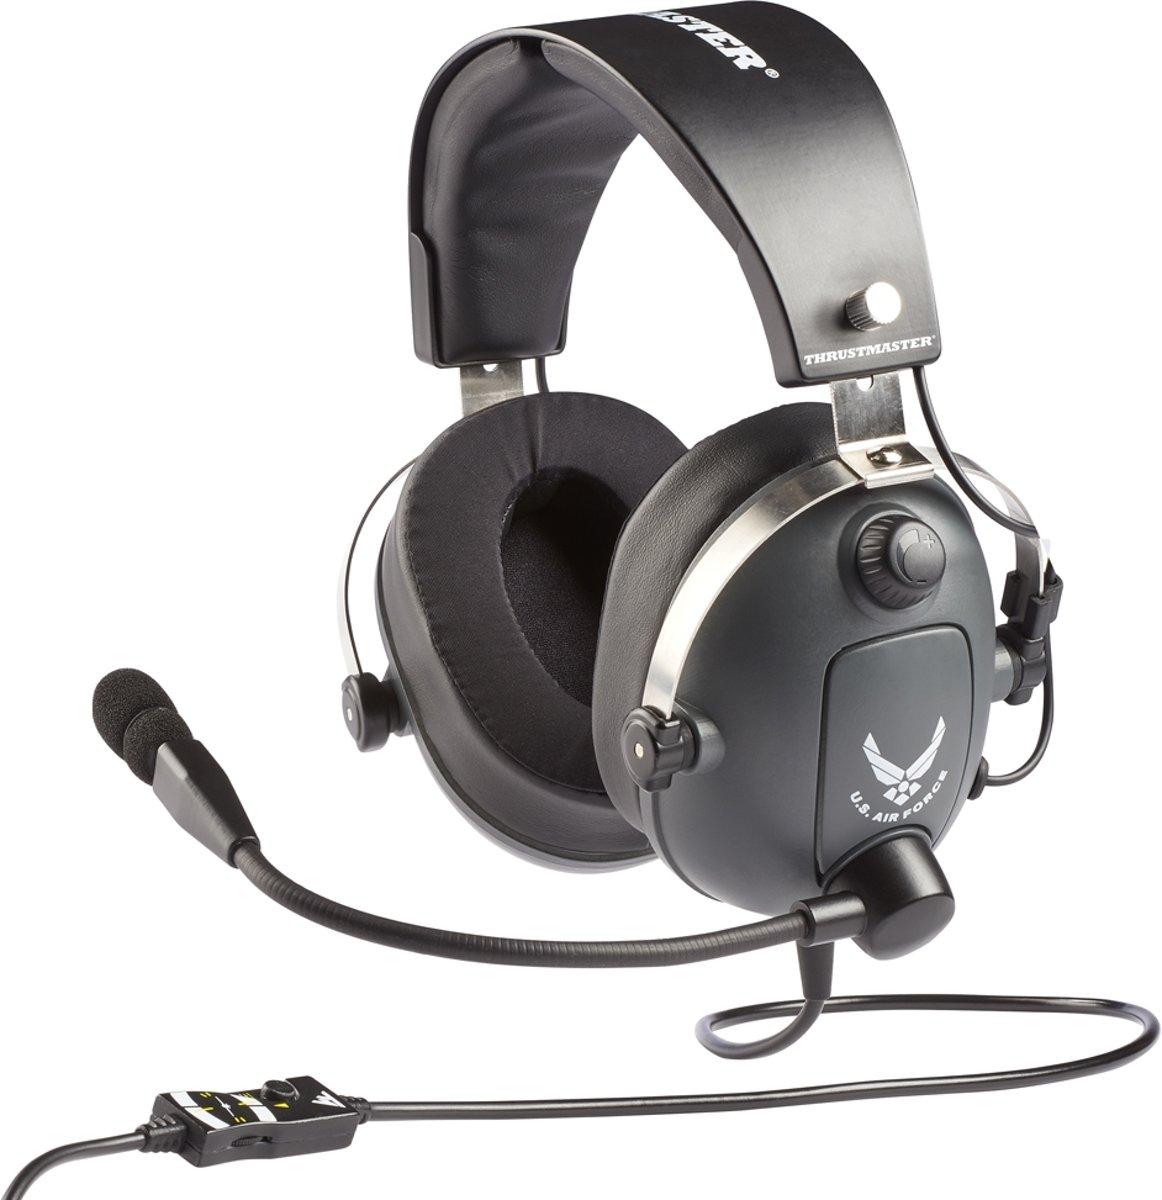 T.FLIGHT U.S. AIR FORCE EDITION HEADSET